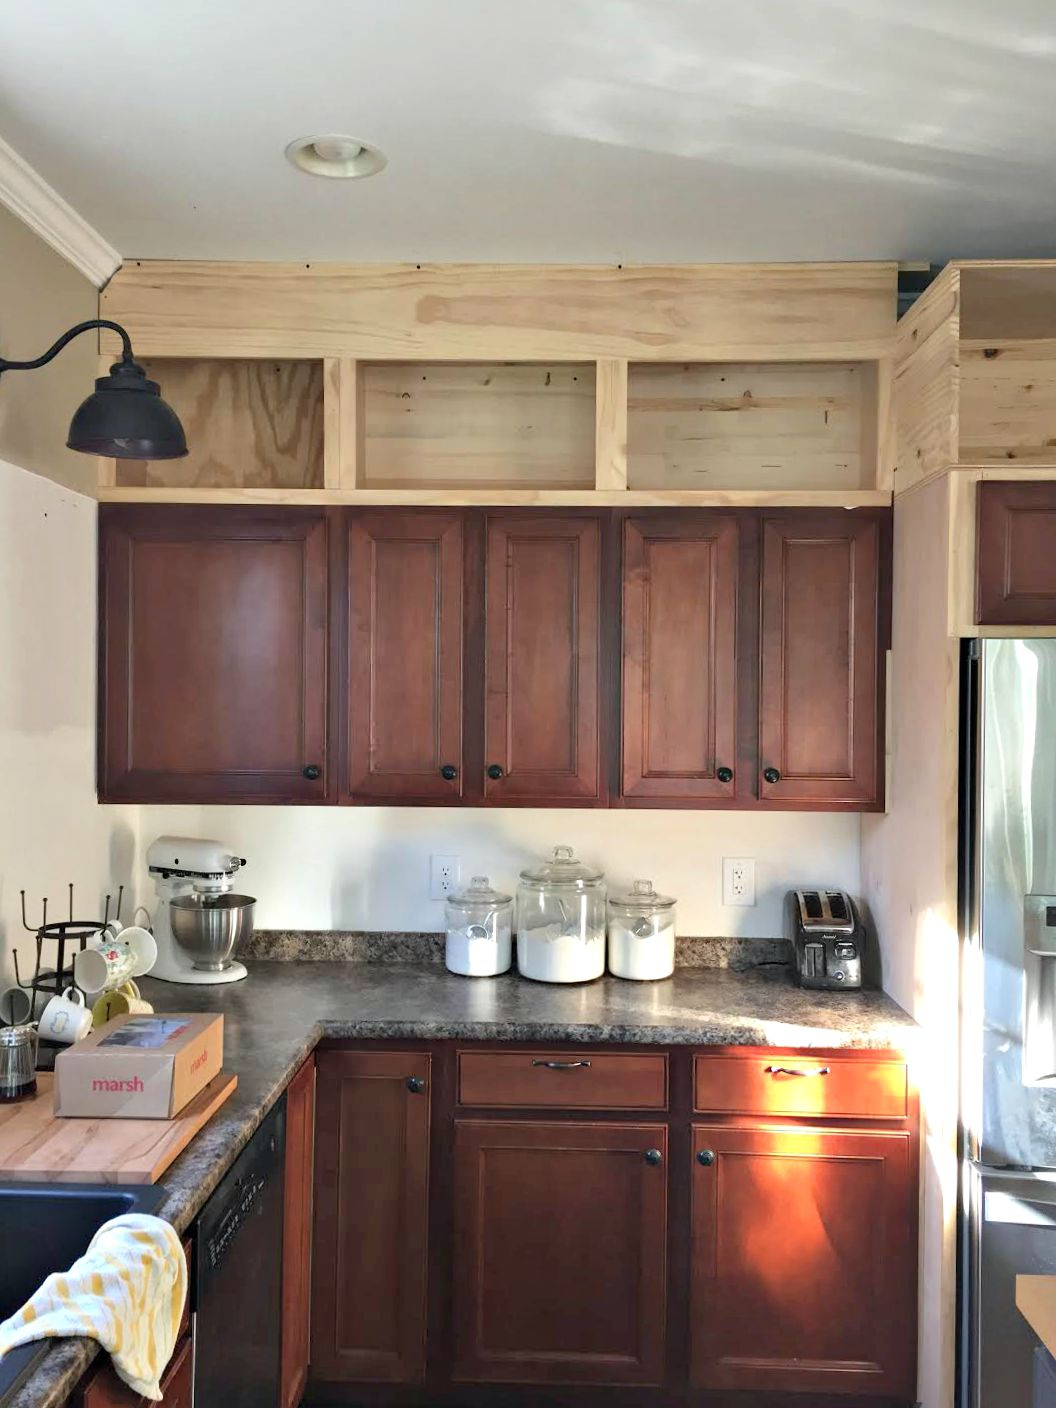 Building cabinets up to the ceiling from thrifty decor chick for Small upper kitchen cabinets